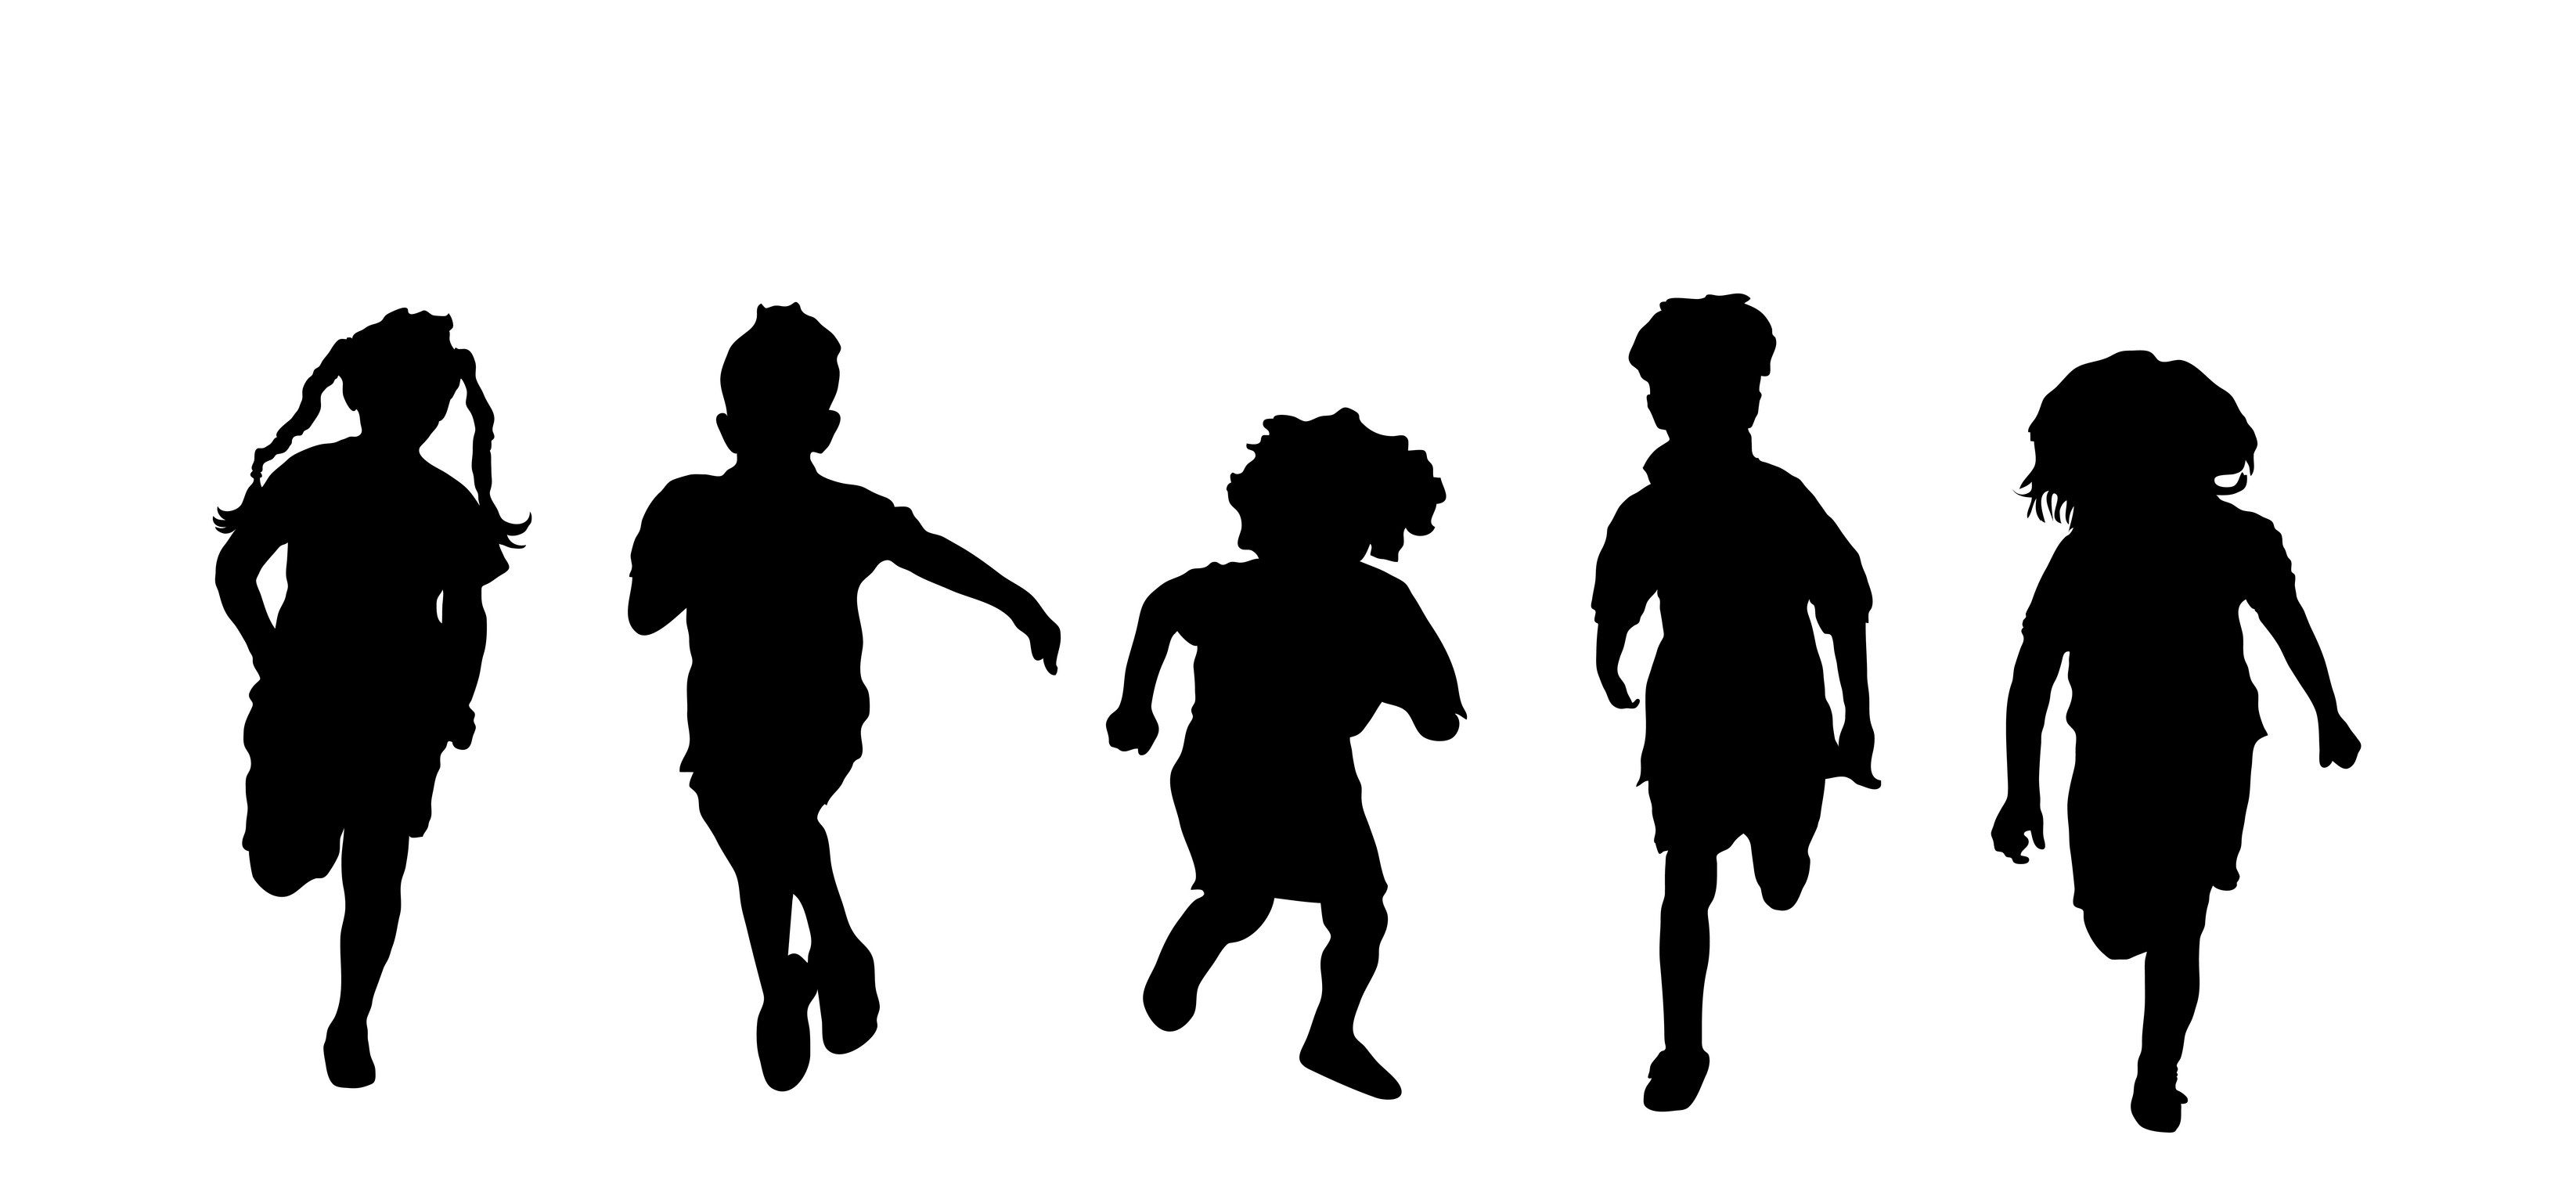 Youth clipart silhouette transparent background. Kids jumping at getdrawings